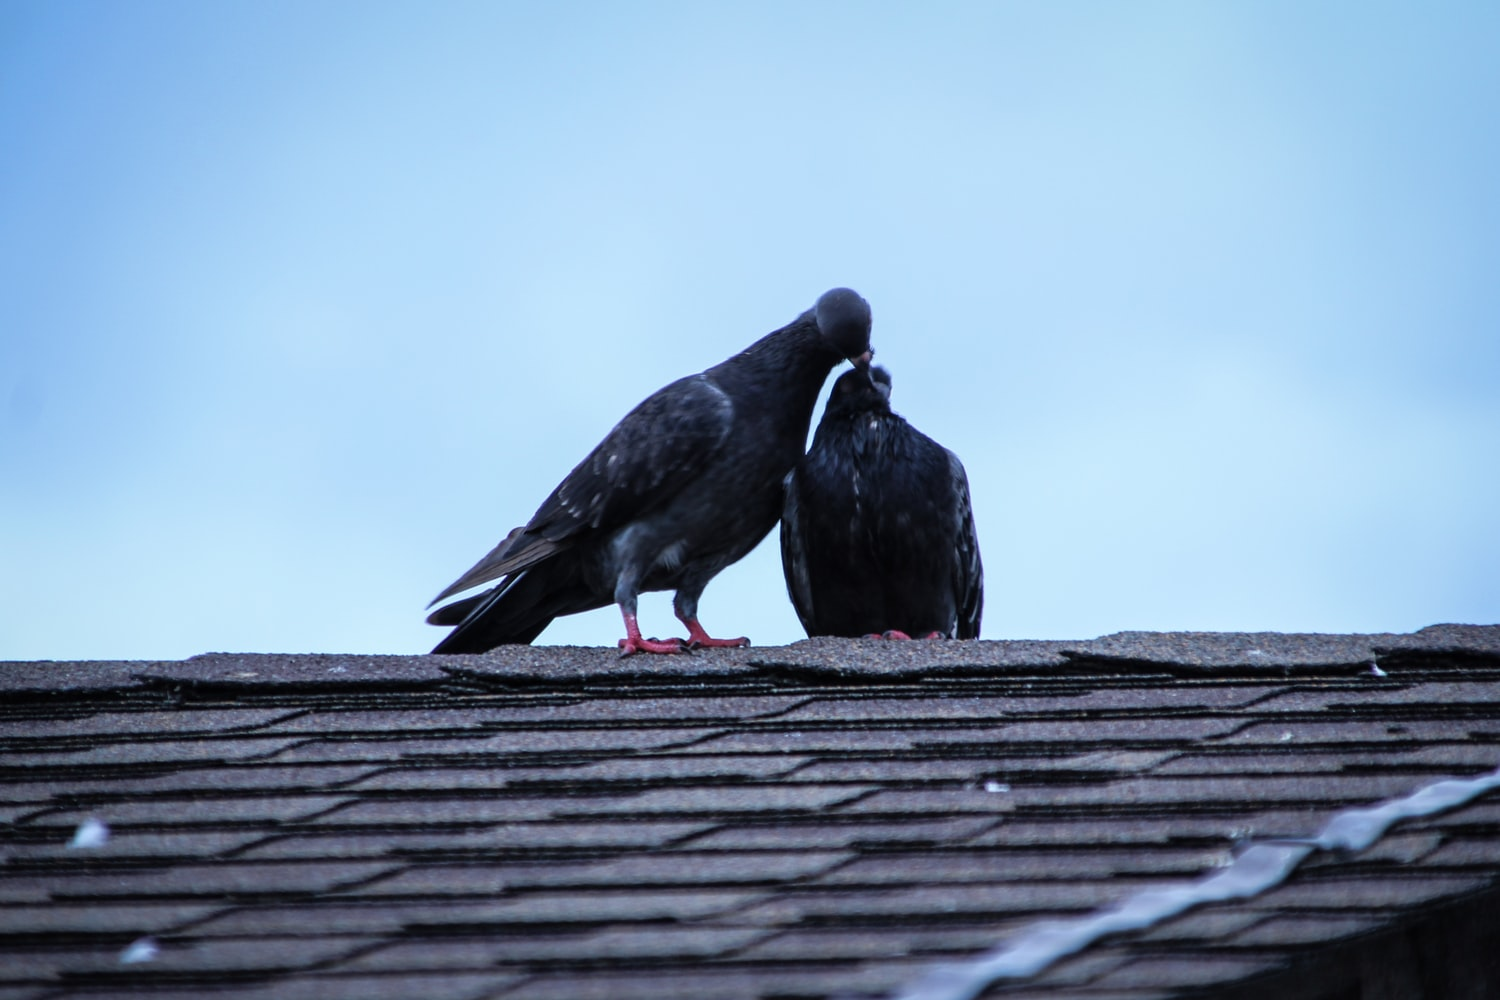 2 pigeons kissing on the roof